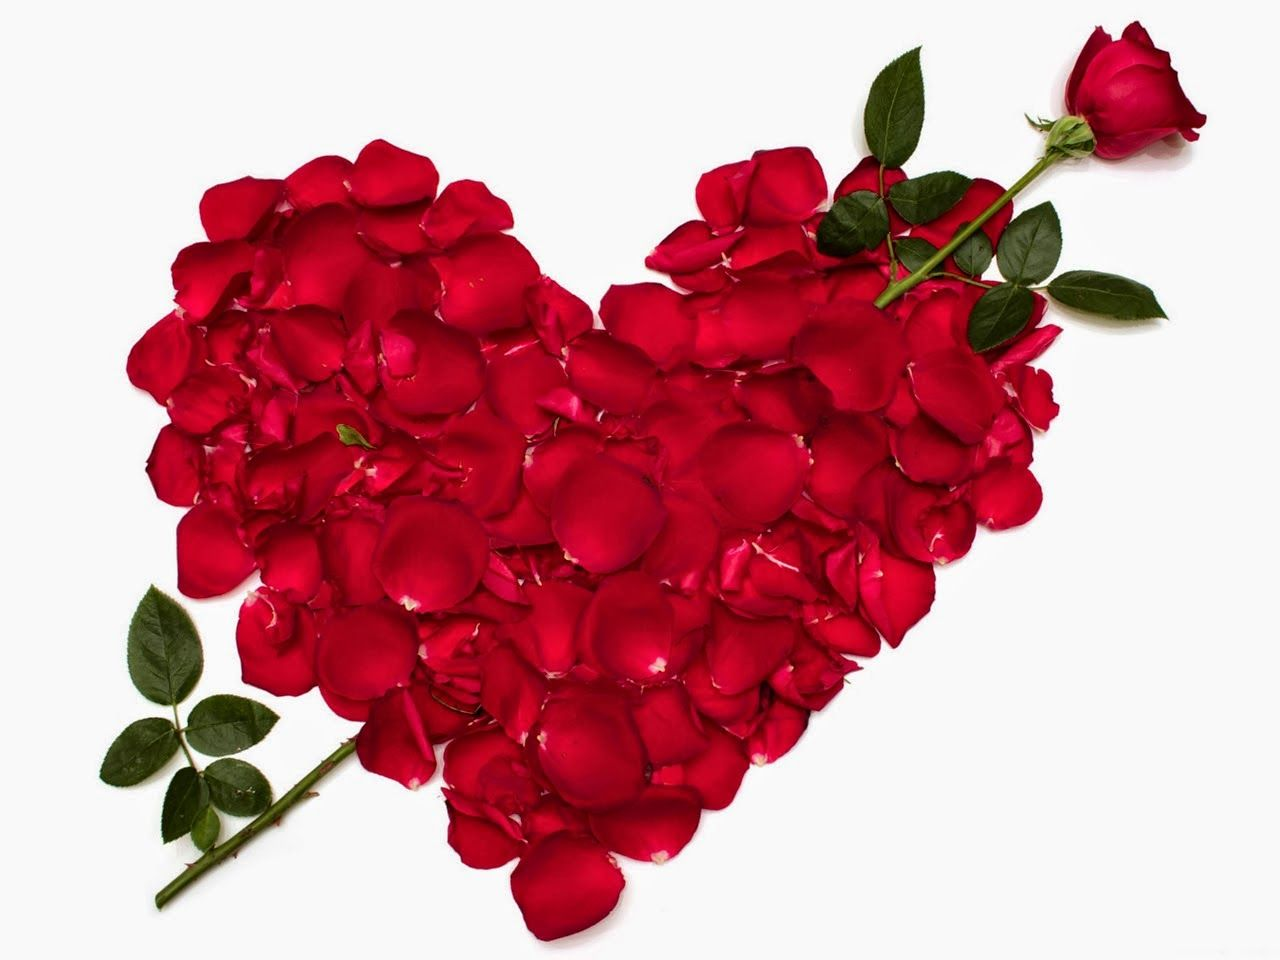 Happy Rose Day 2019 Image, Wishes, Quotes, Wallpapers, SMS and Messages